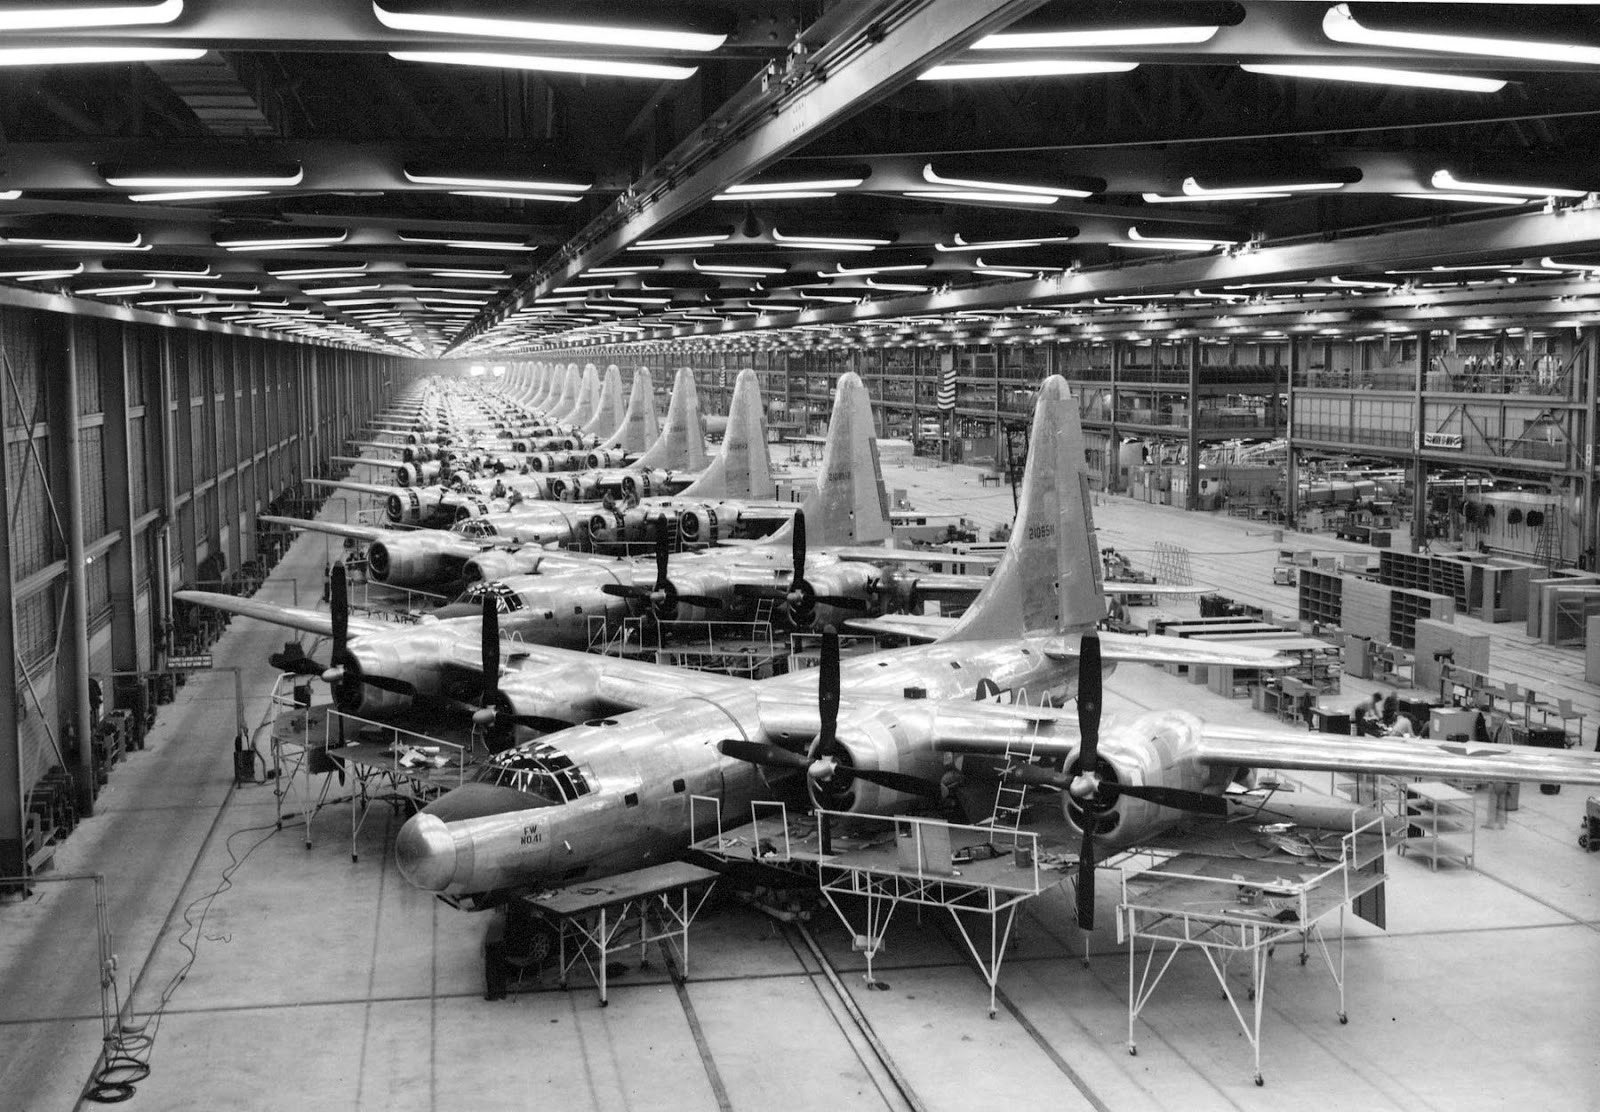 the domination of british aircraft during wwii Written by david boyd thursday, 01 january 2009 21:06 production of british aircraft by year here is a list of production figures for british aircraft by year during wwii.